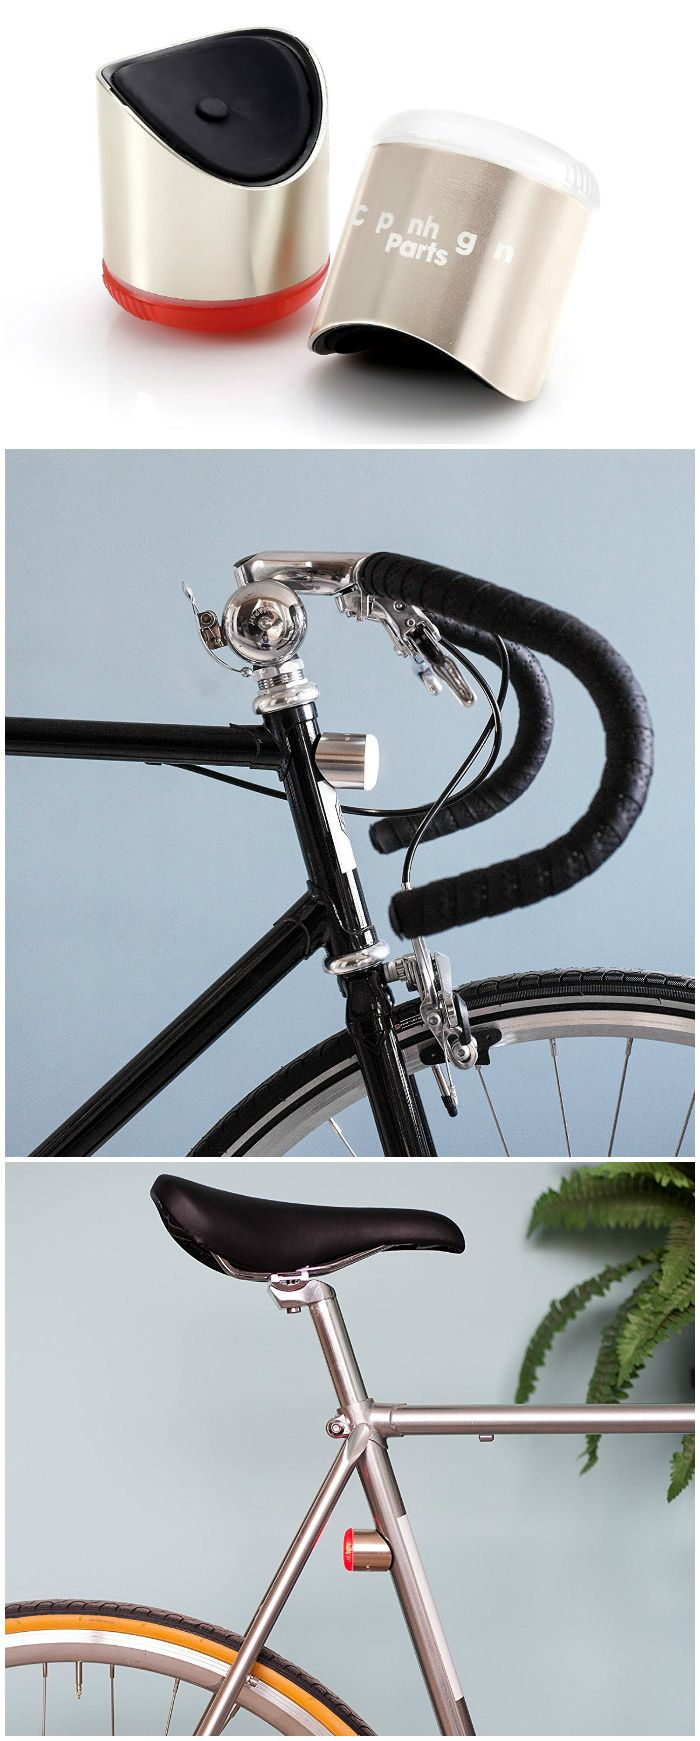 Combining magnets and LEDs, the Magnetic Bike Lights set looks good, works well and can be fitted and removed instantly. #affiliate